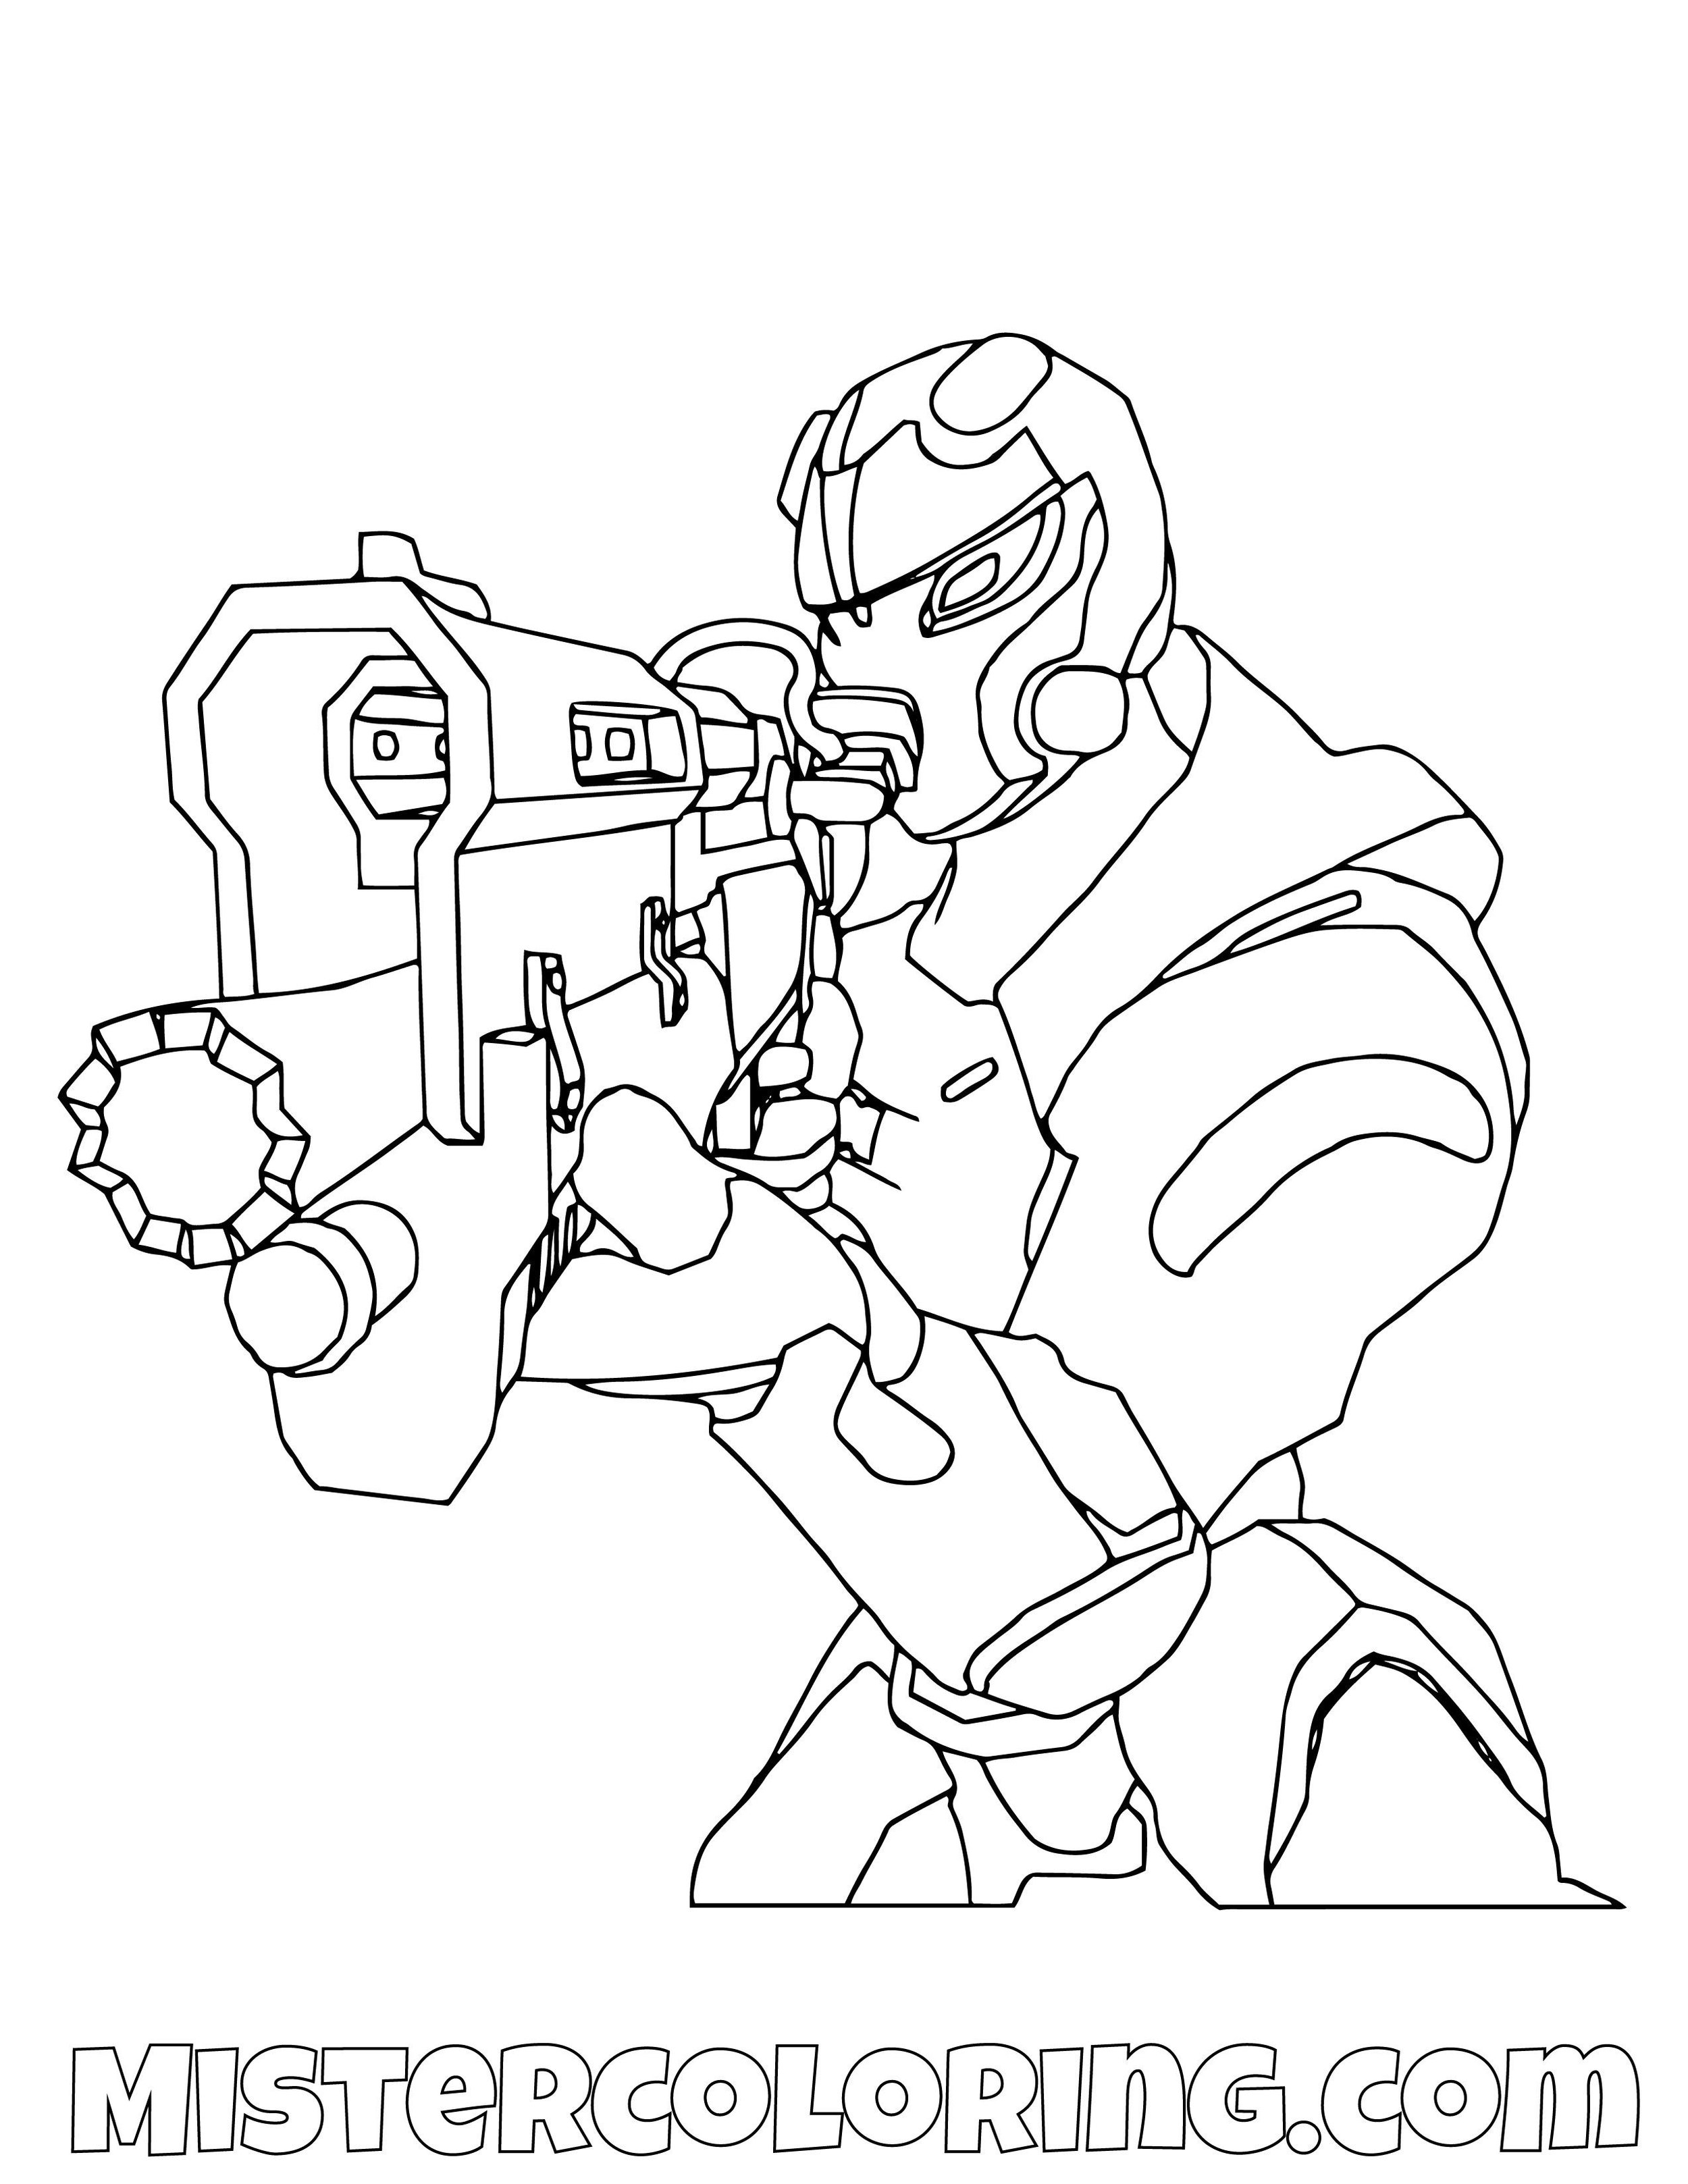 Omega Aiming With Tac Shotgun Fortnite Coloring Page